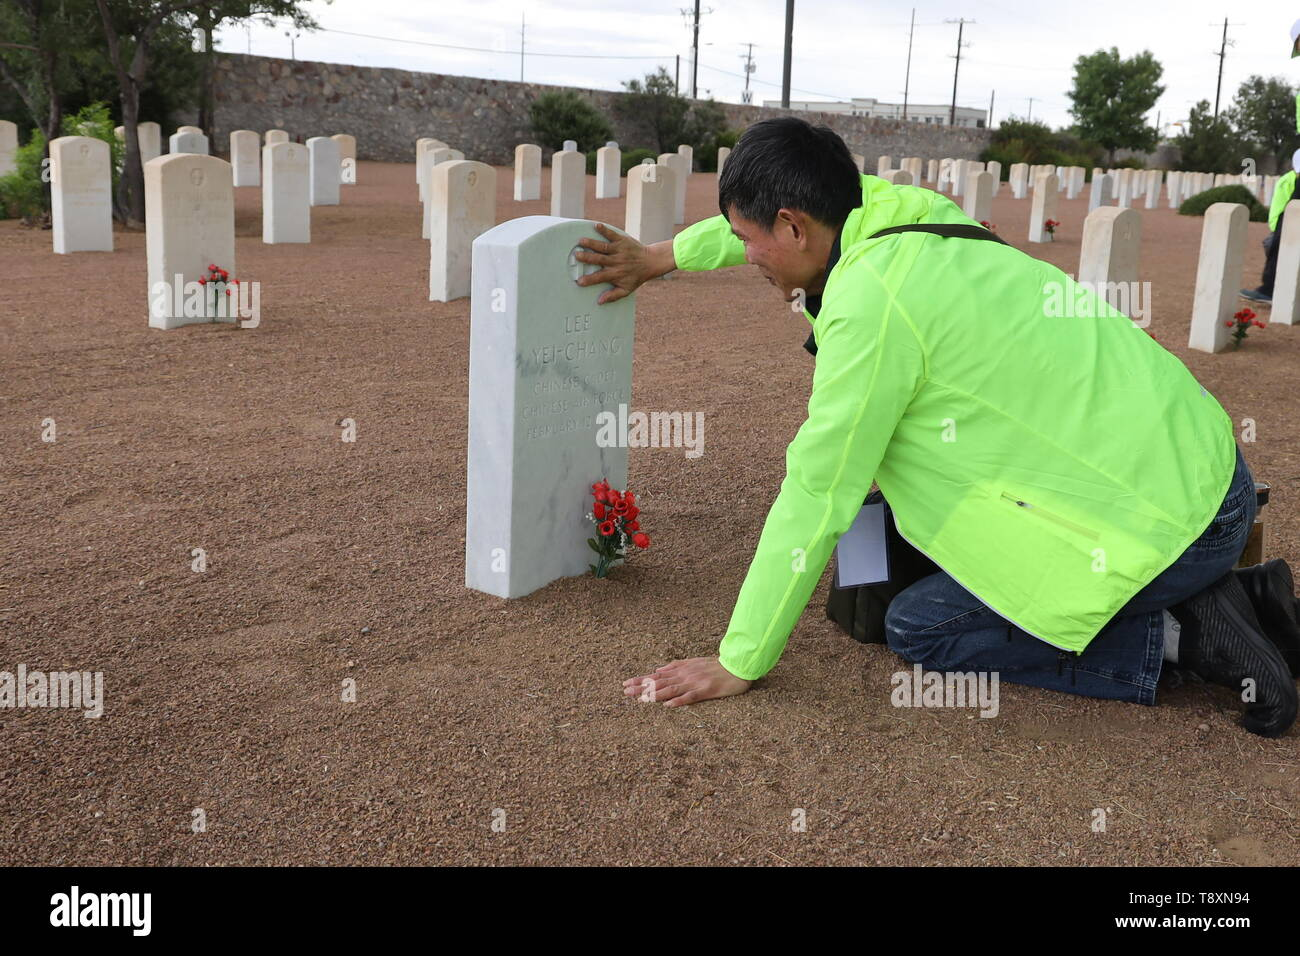 (190515) -- EL PASO (U.S.), May 15, 2019 (Xinhua) -- A family member of a killed Chinese pilot pays homage to his loved one at the Fort Bliss National Cemetery in El Paso, Texas, the United States, on May 12, 2019. More than seven decades ago, groups of young Chinese came to the United States for military flight trainings against Japanese invasion. Unfortunately, 52 of them were killed during pilot trainings. Now, for the first time in more than half a century, relatives of those killed Chinese cadets made an arduous journey to El Paso, U.S. state of Texas, for belated reunions with their dece - Stock Image